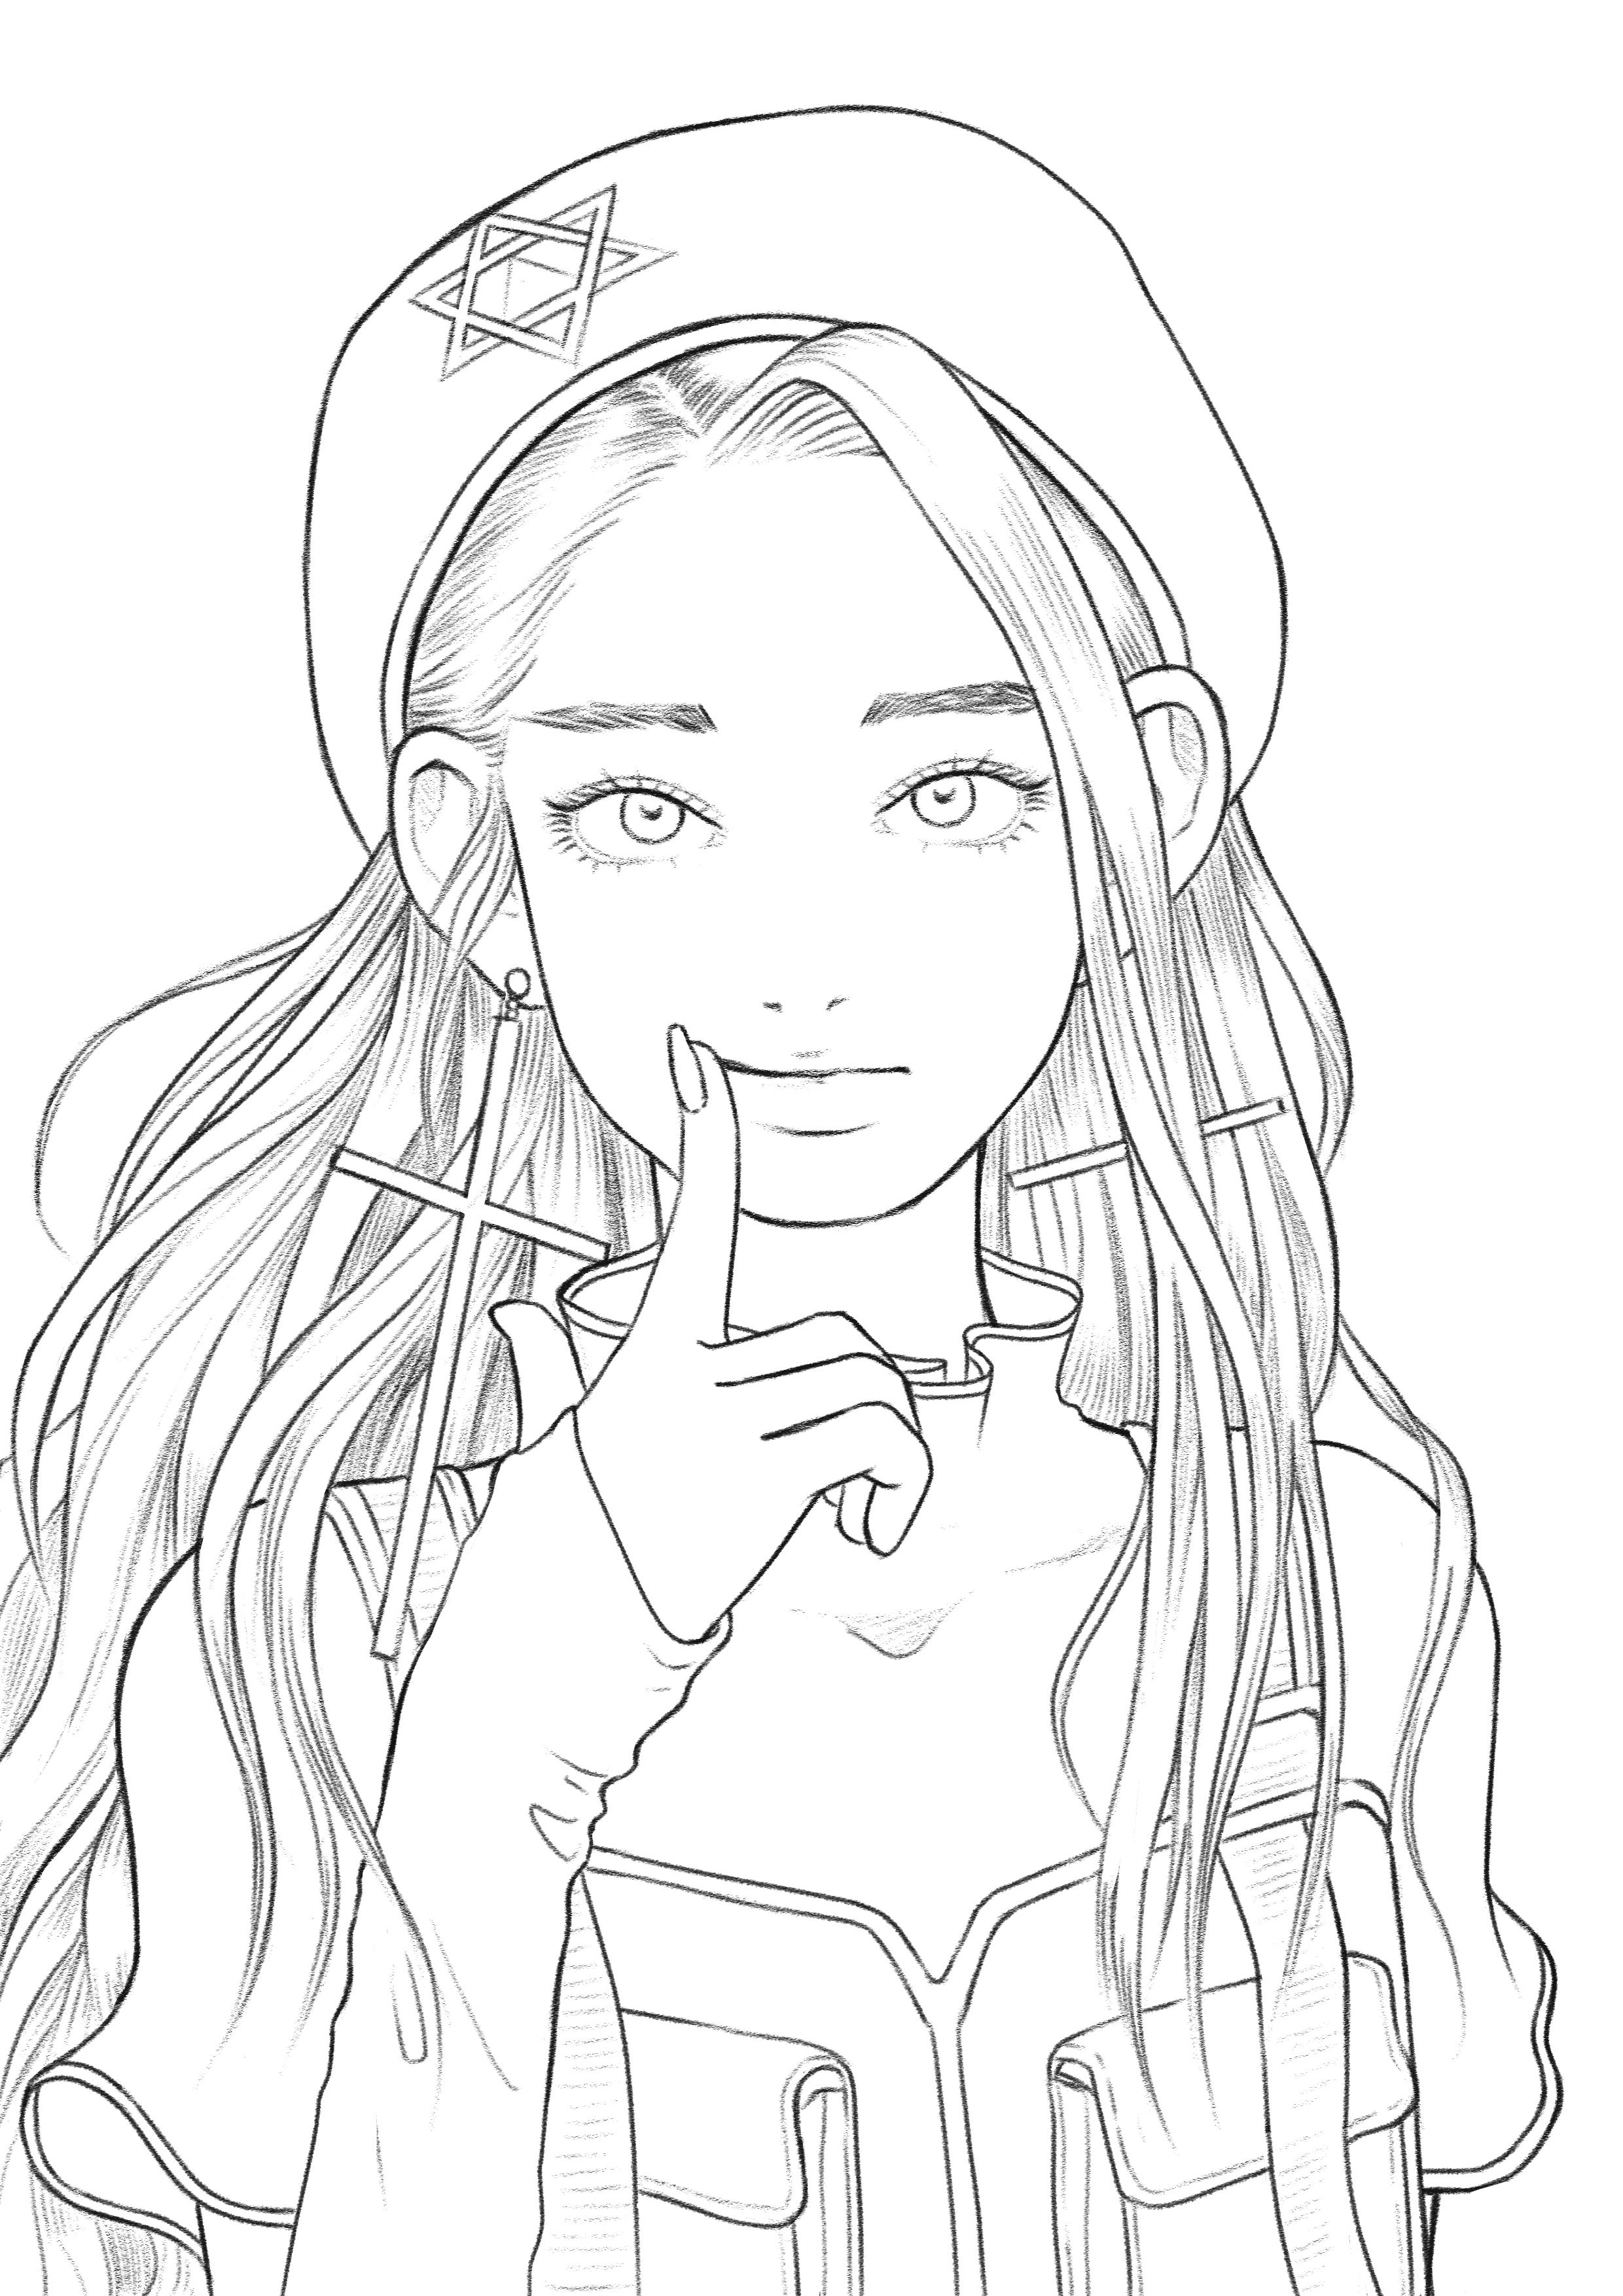 Military Girl Coloring Page For Adults Printable Easy Etsy Cartoon Girl Drawing Anime Lineart Coloring Book Art